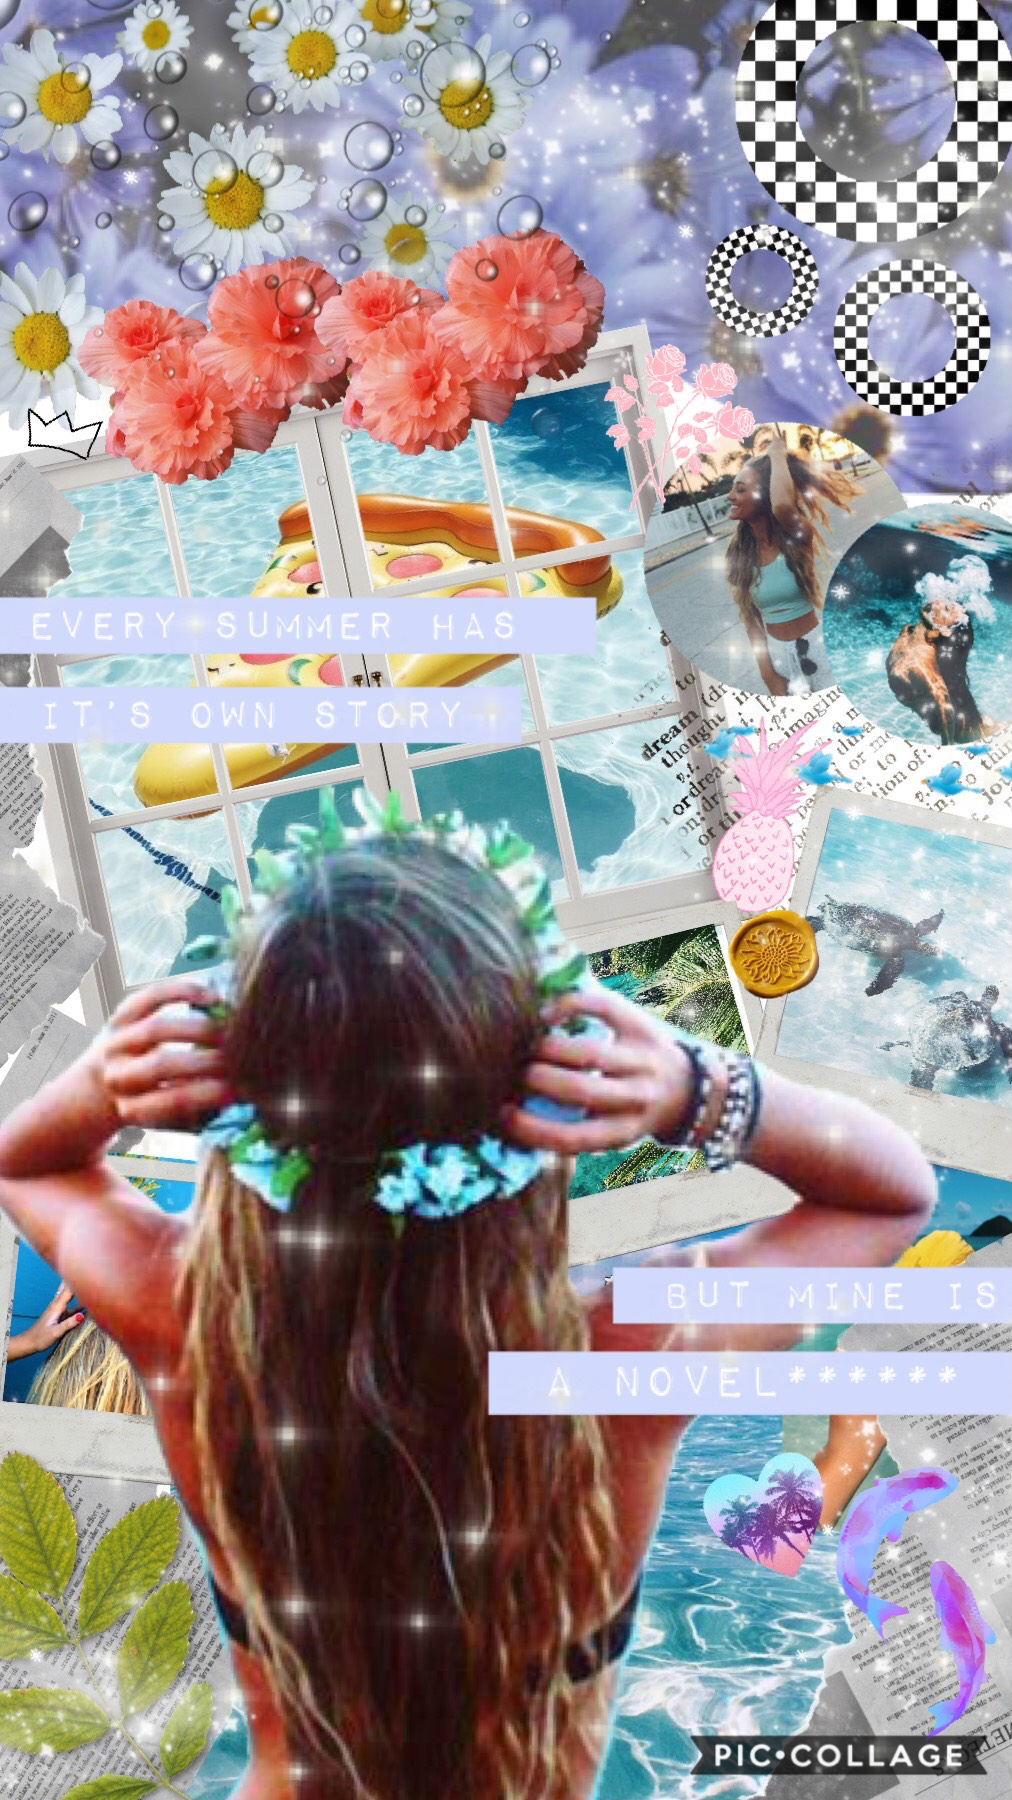 **Please tap**  This is an entry for my friend @SapphireTeal's summer challenge go check it out!!! #summersours❤️❤️